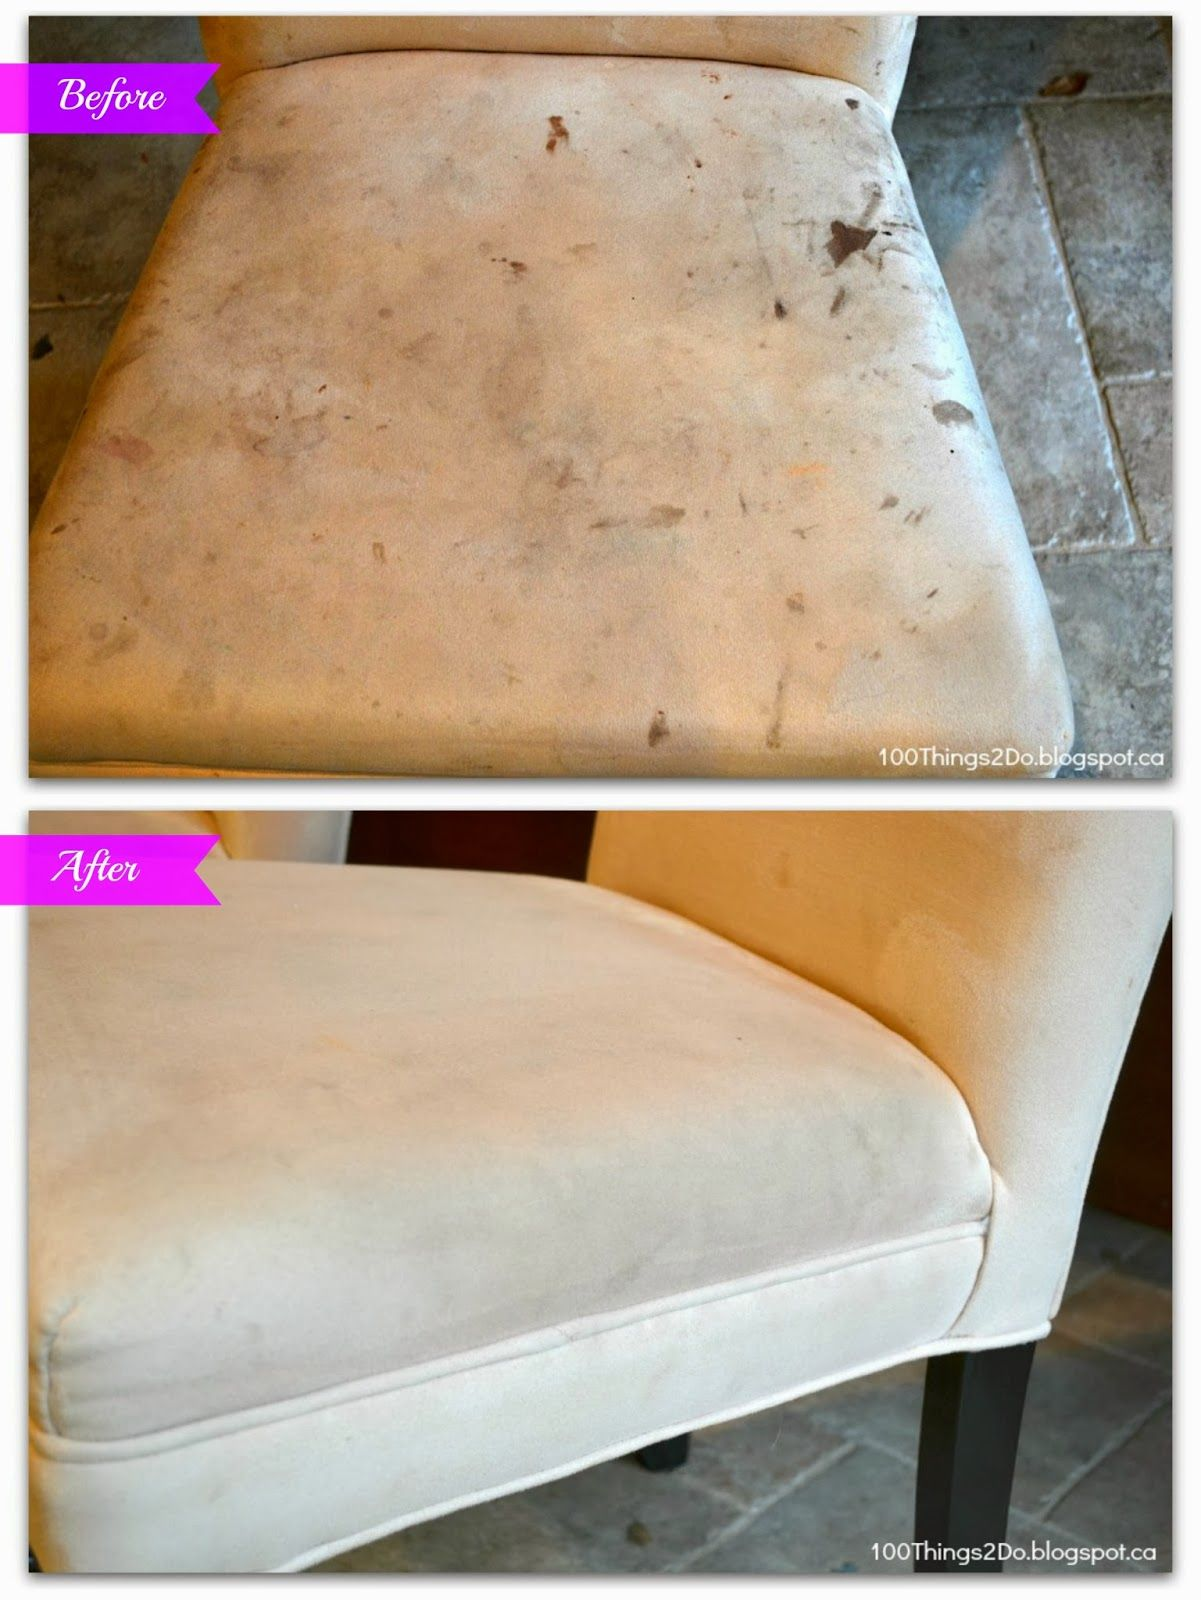 Marvelous Cleaning Microsuede Diy Must Trys Microsuede Couch Gmtry Best Dining Table And Chair Ideas Images Gmtryco